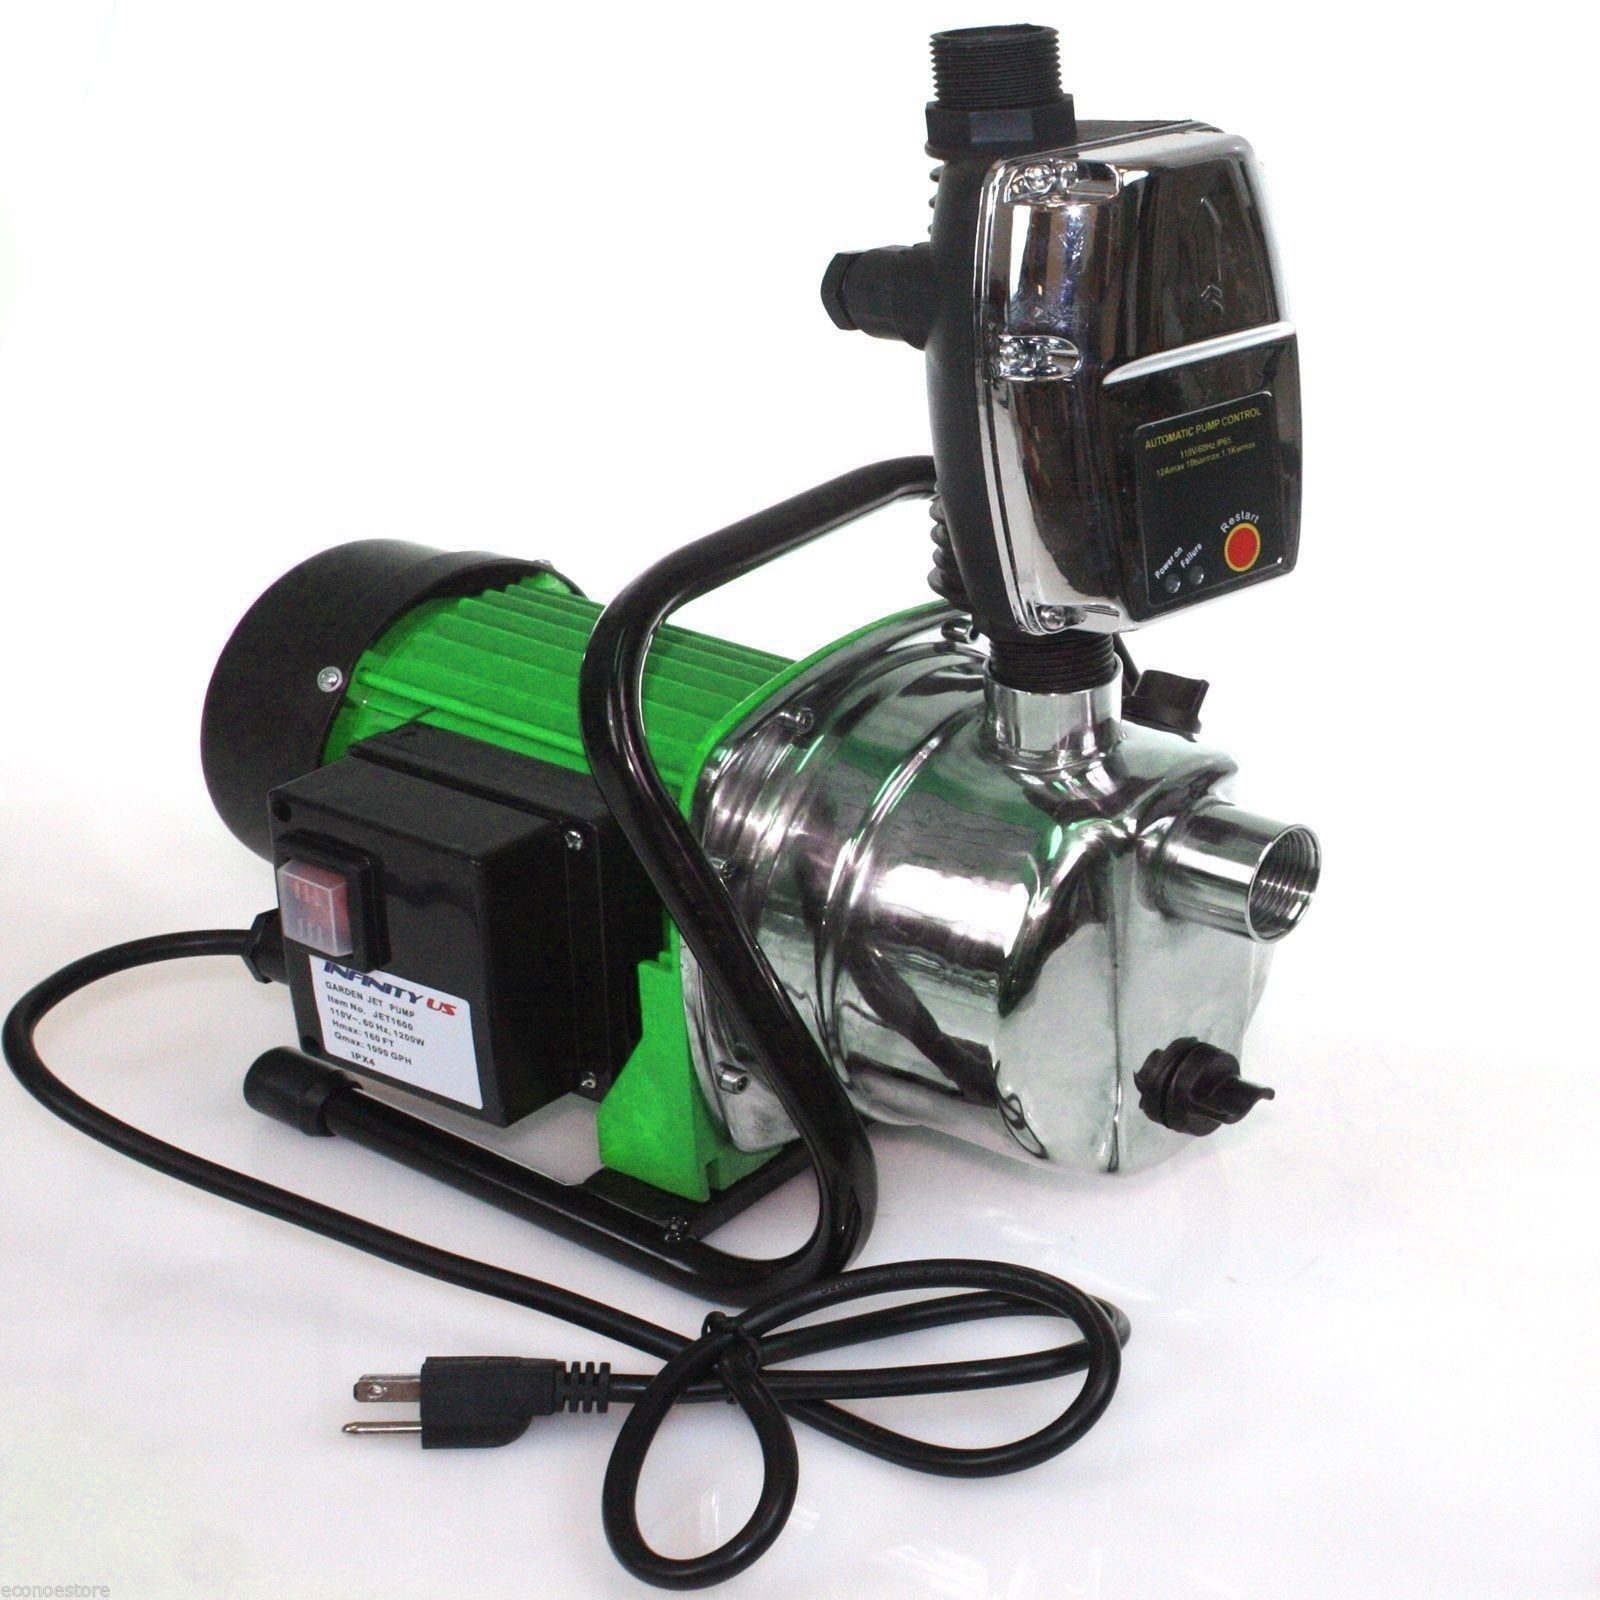 Combo 1.6 HP 1200W Jet Shallow Water Well Booster Pump w/ Pressure Controller By Allgoodsdelight365